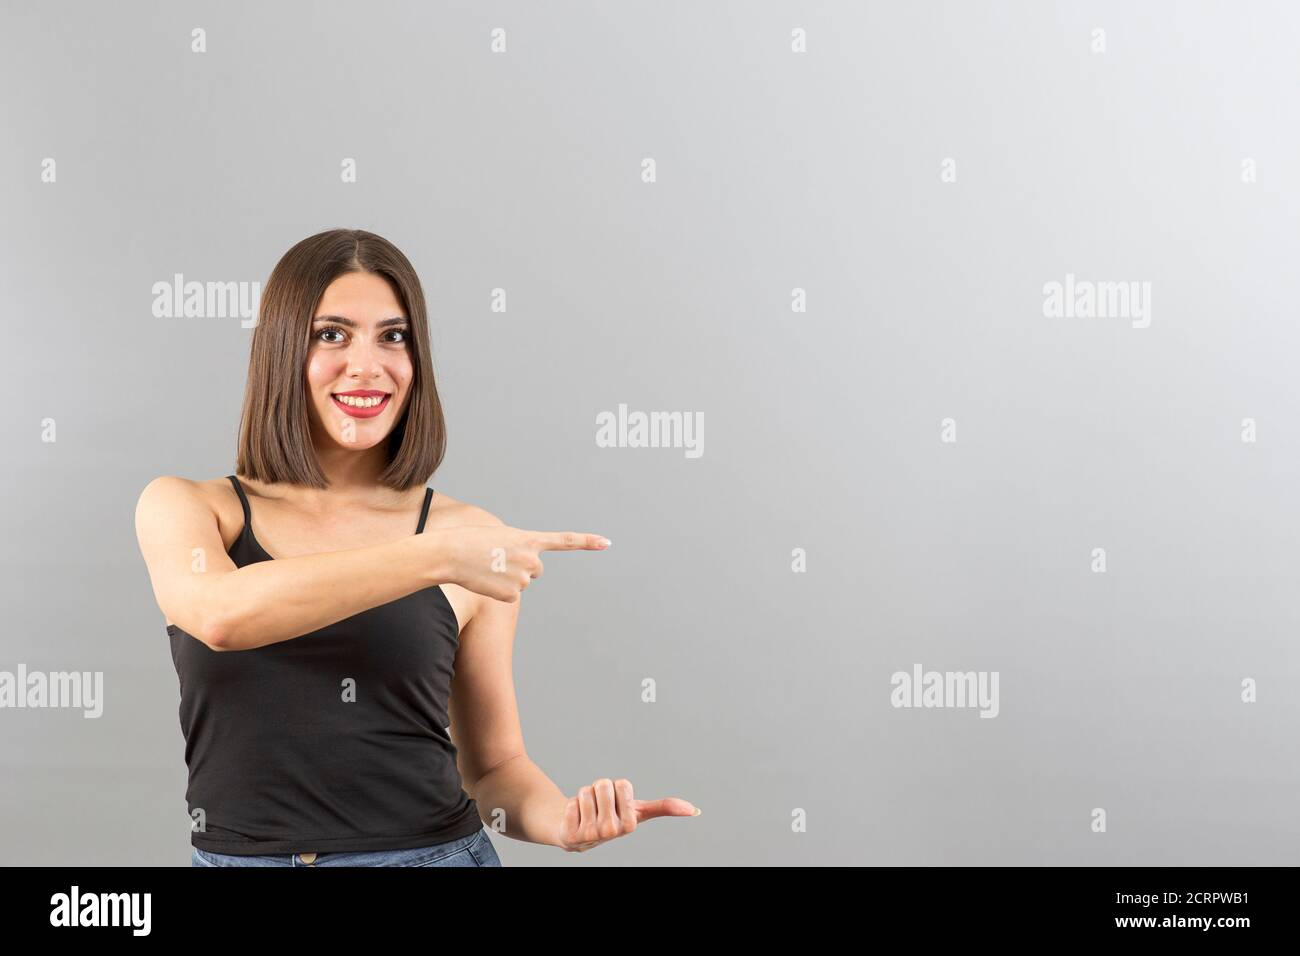 Beautiful Turkish woman with casual clothes is pointing the right side, isolated studio shot with copy space Stock Photo